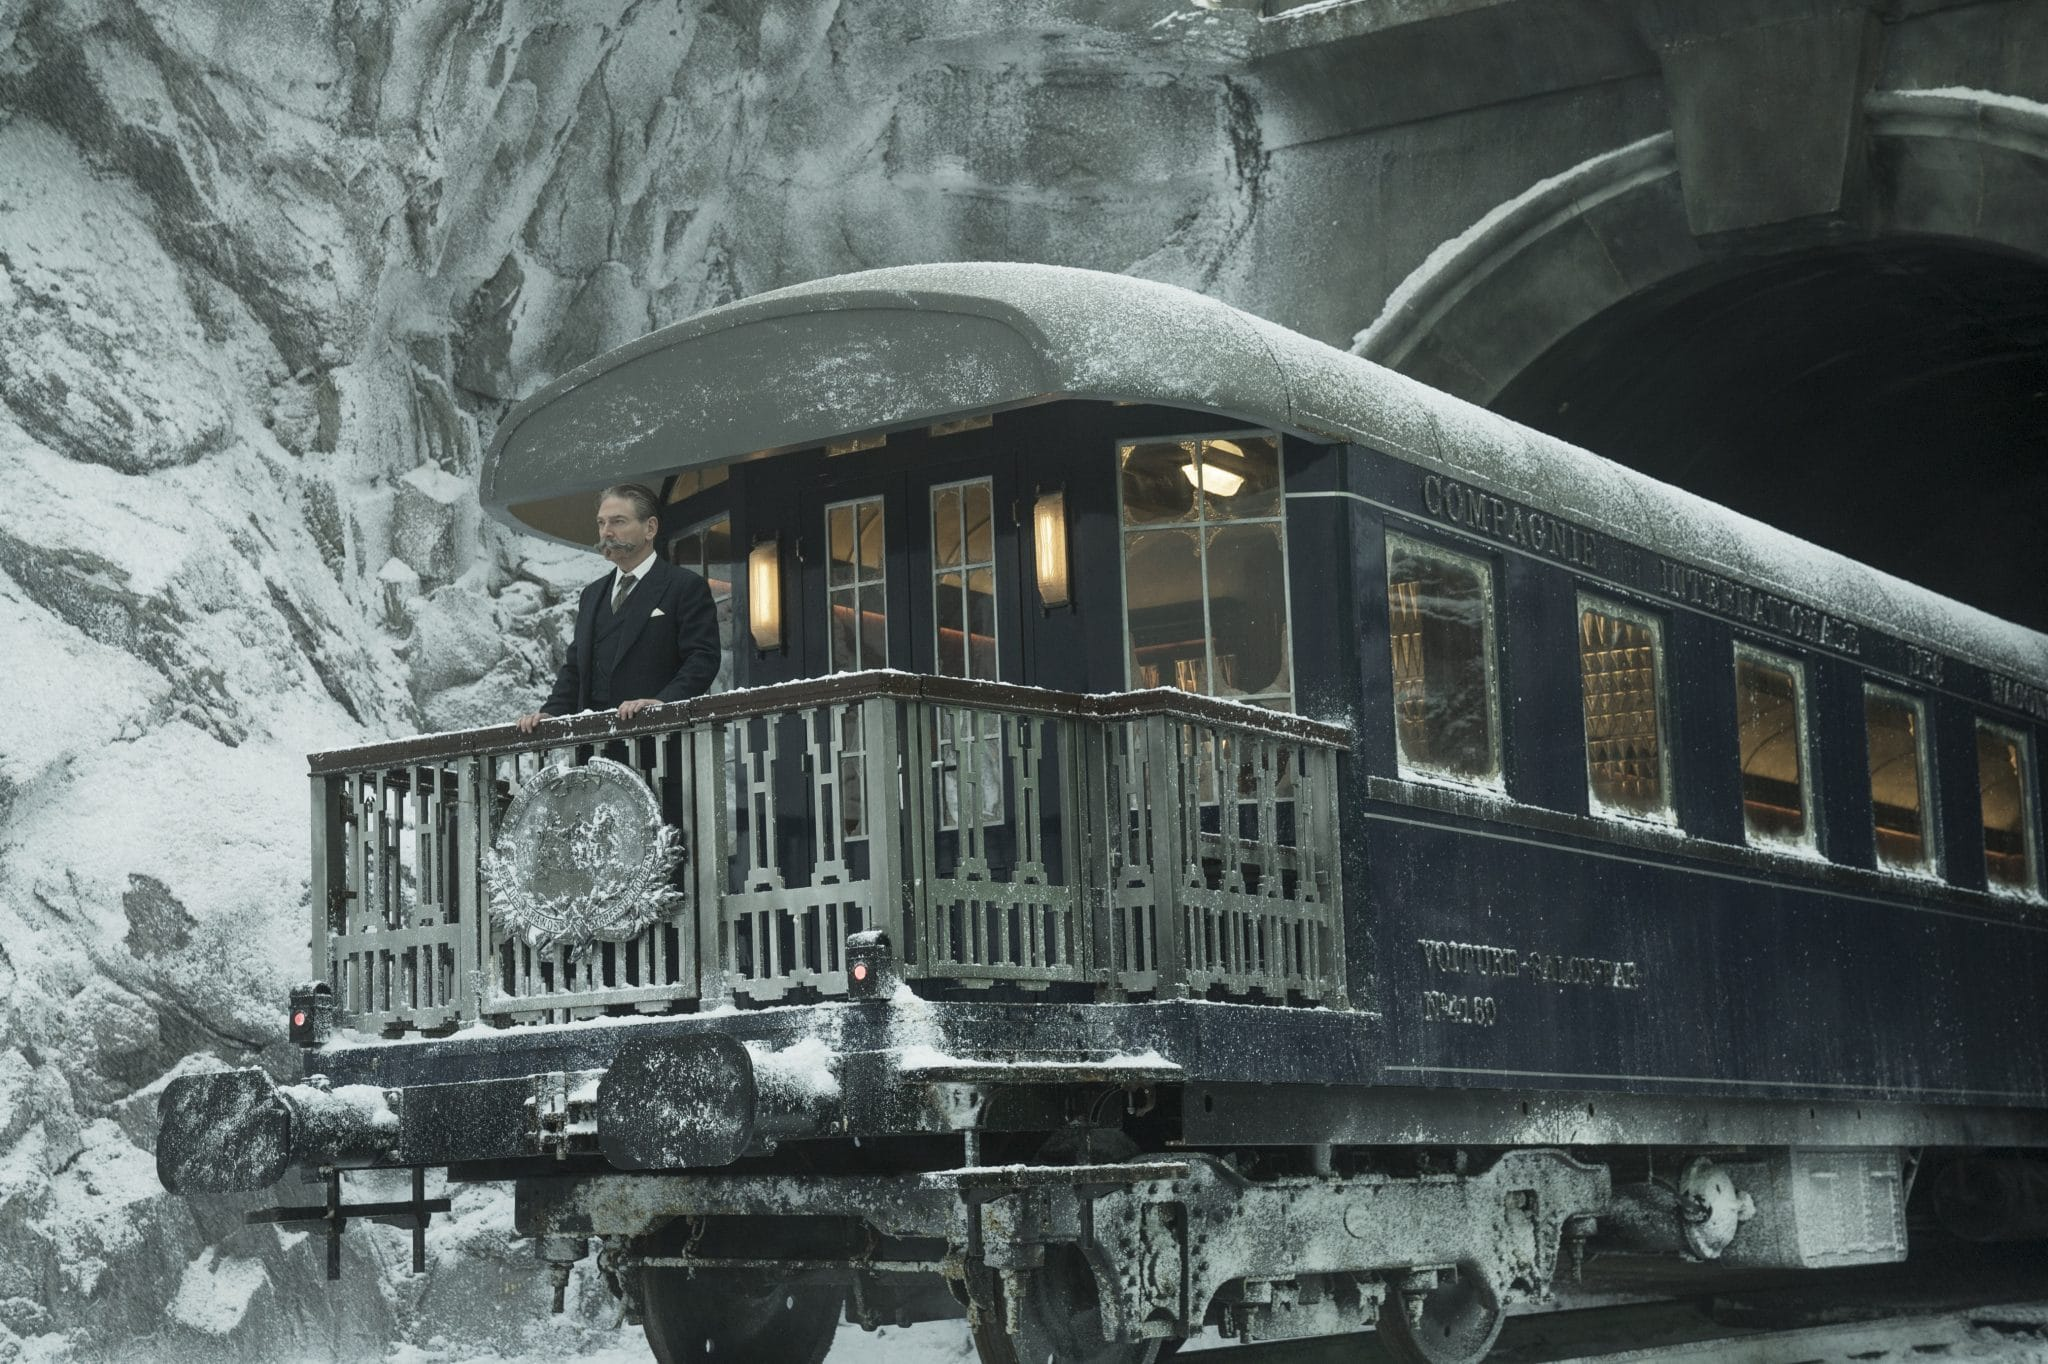 Le crime de l'orient express photo critique